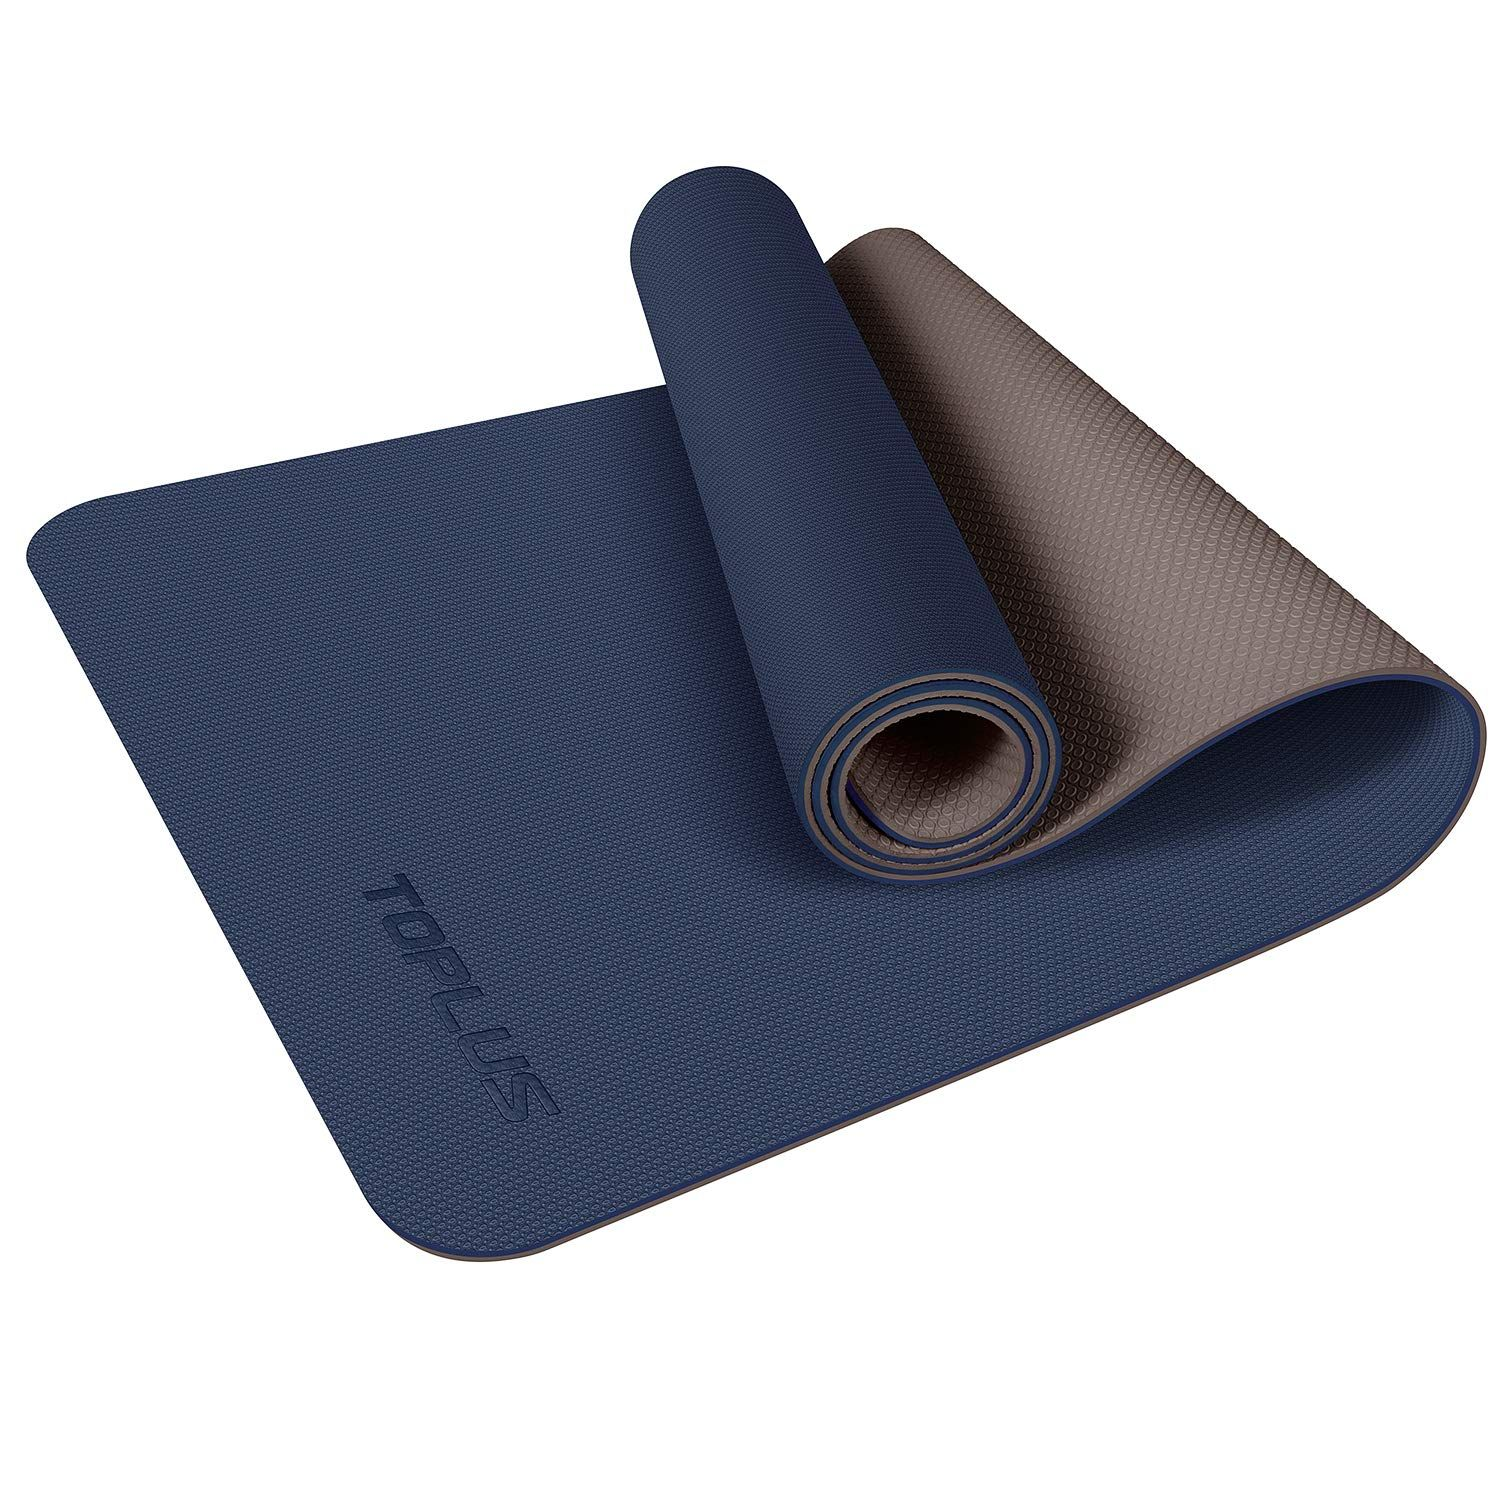 Yoga Mat Non Slip Yoga Mat Eco Friendly Exercise Workout Mat With Carrying Strap For Yoga Floor Workouts Mat Exercises Exercise